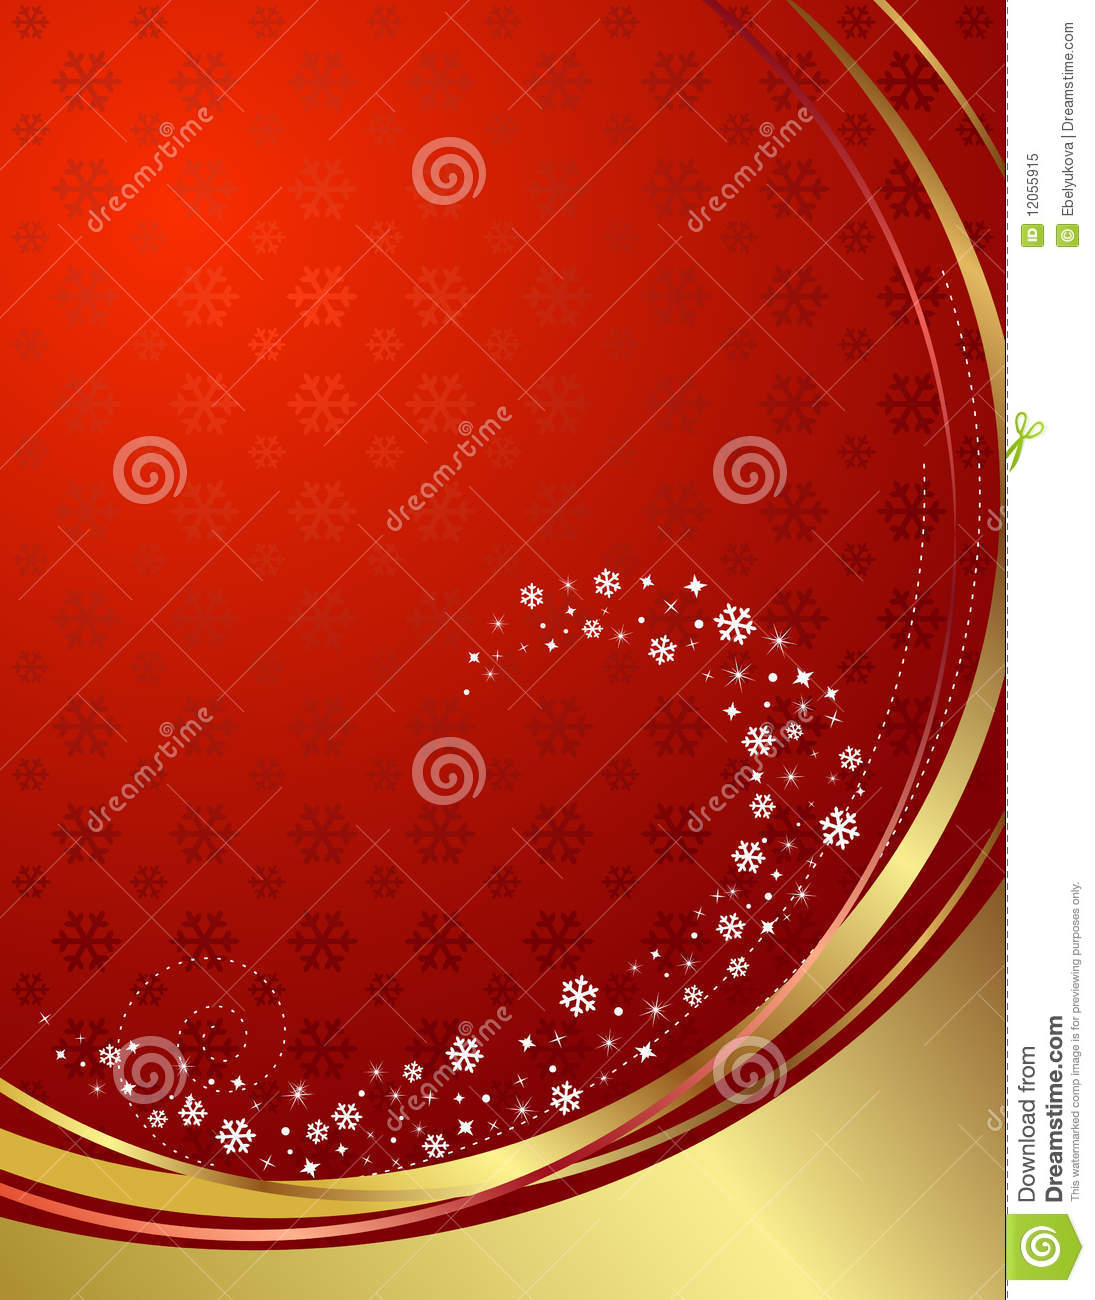 Red And Gold Background With Snowflakes. Royalty Free ...